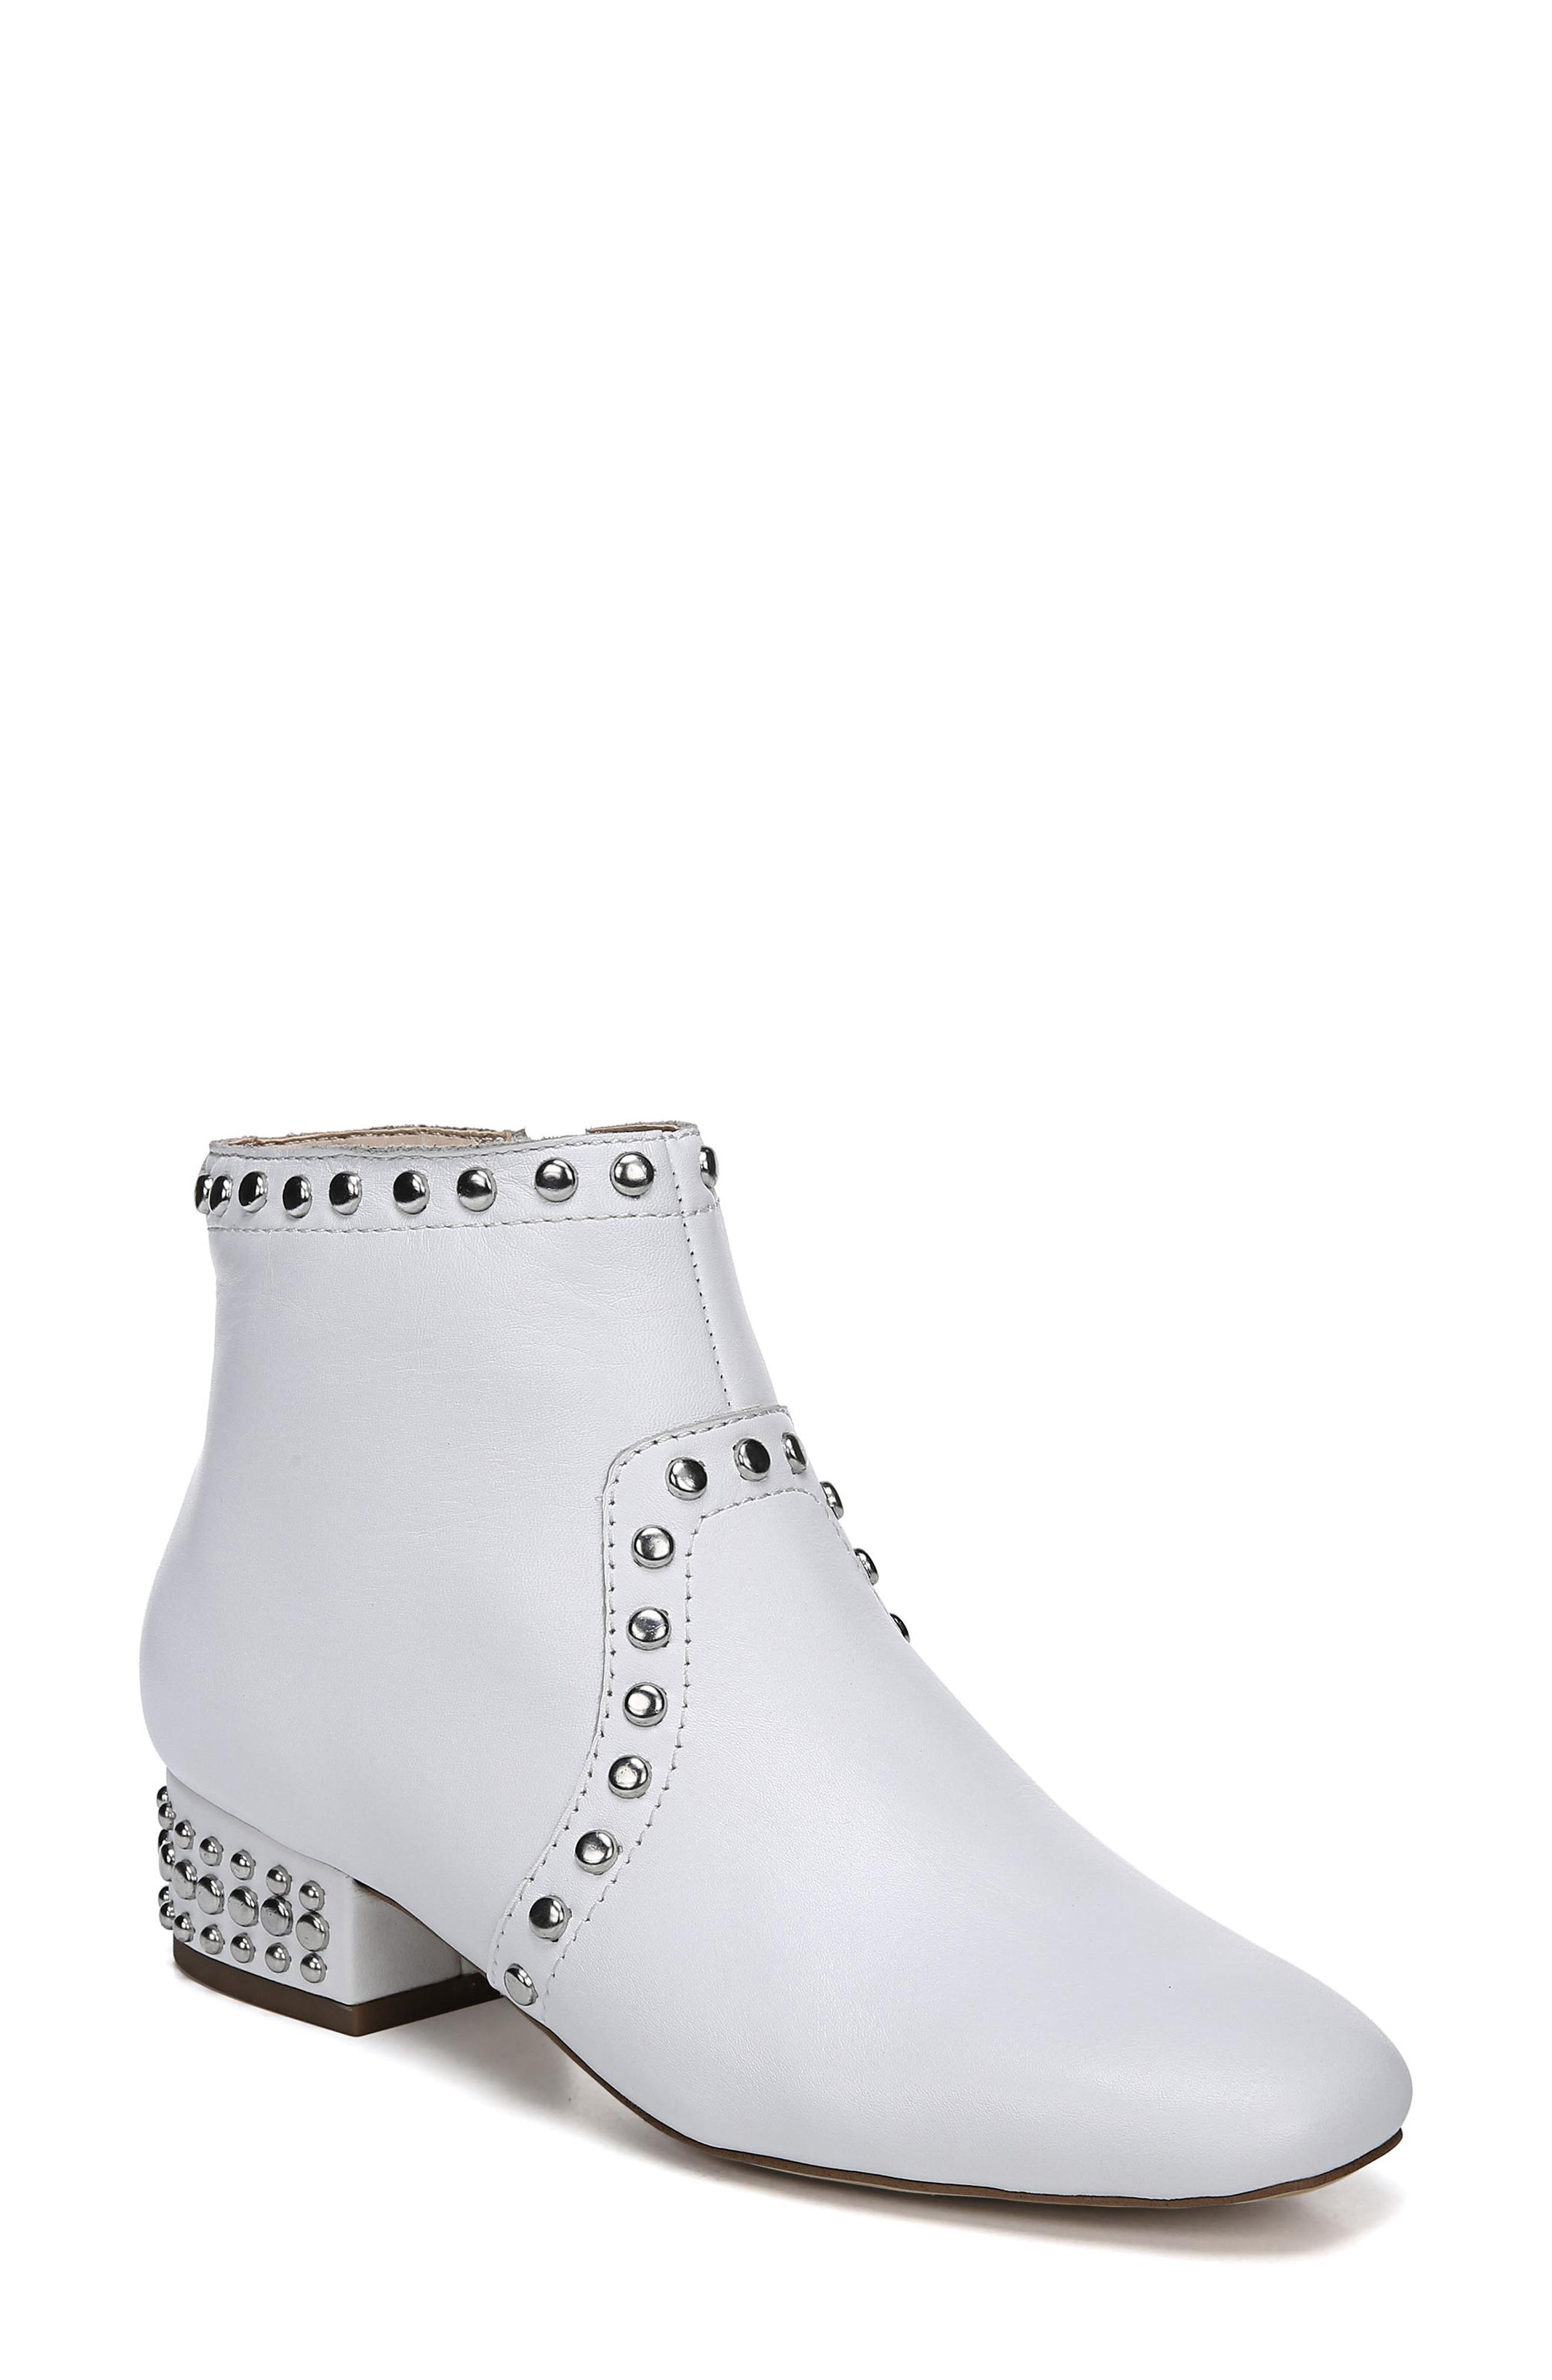 Lorin Studded Bootie,                             Main thumbnail 1, color,                             WHITE LEATHER